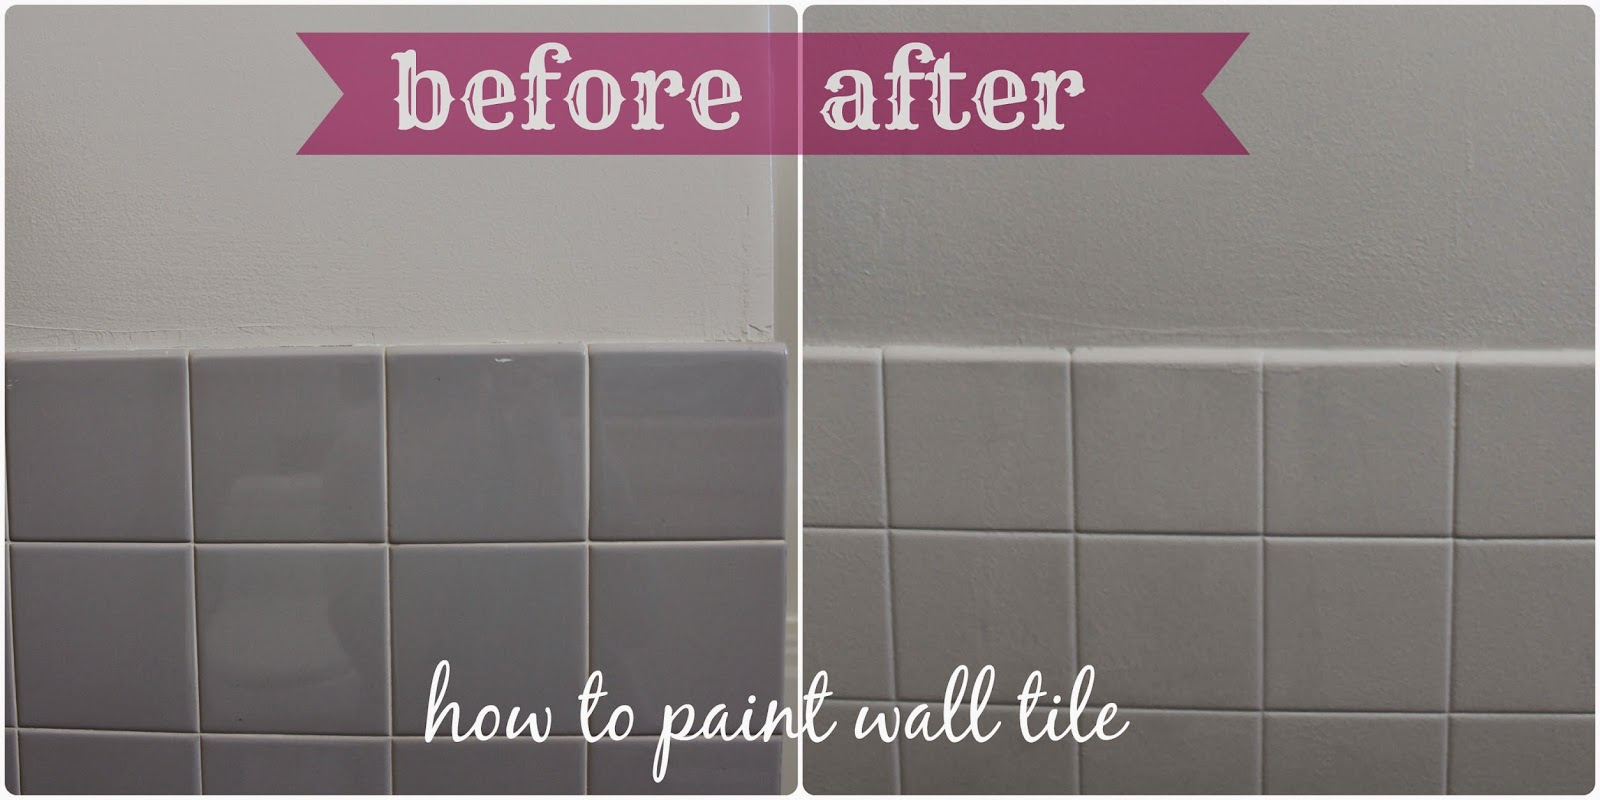 Painting bathroom tile - Can i paint over bathroom tiles ...